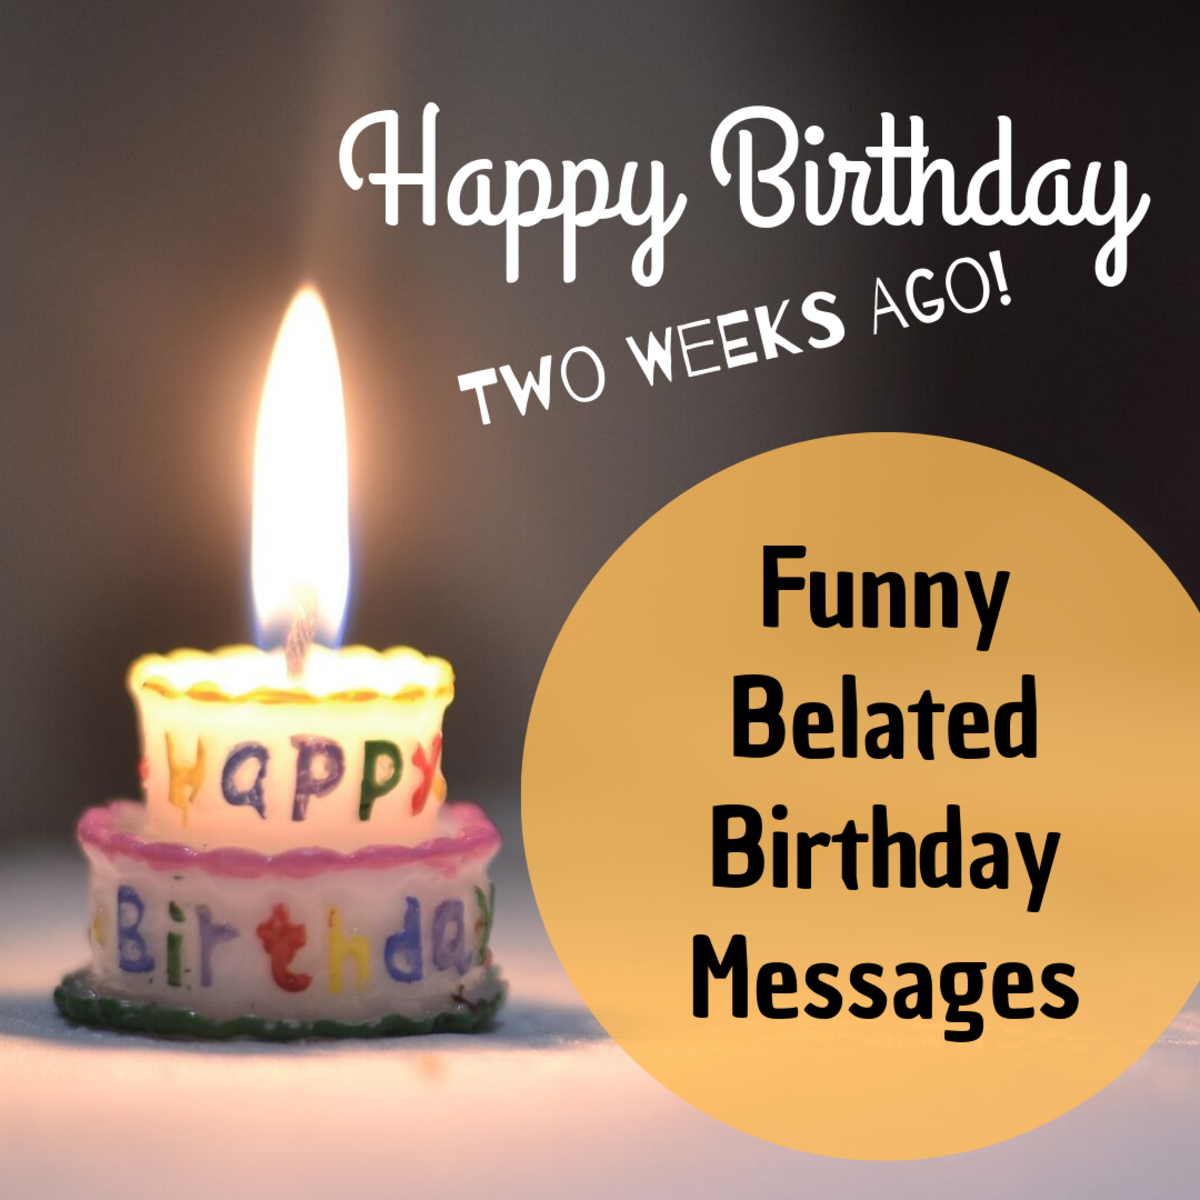 Oops—did you miss someone's birthday? Find a funny message to send them and wish them a very late and very happy birthday anyway!